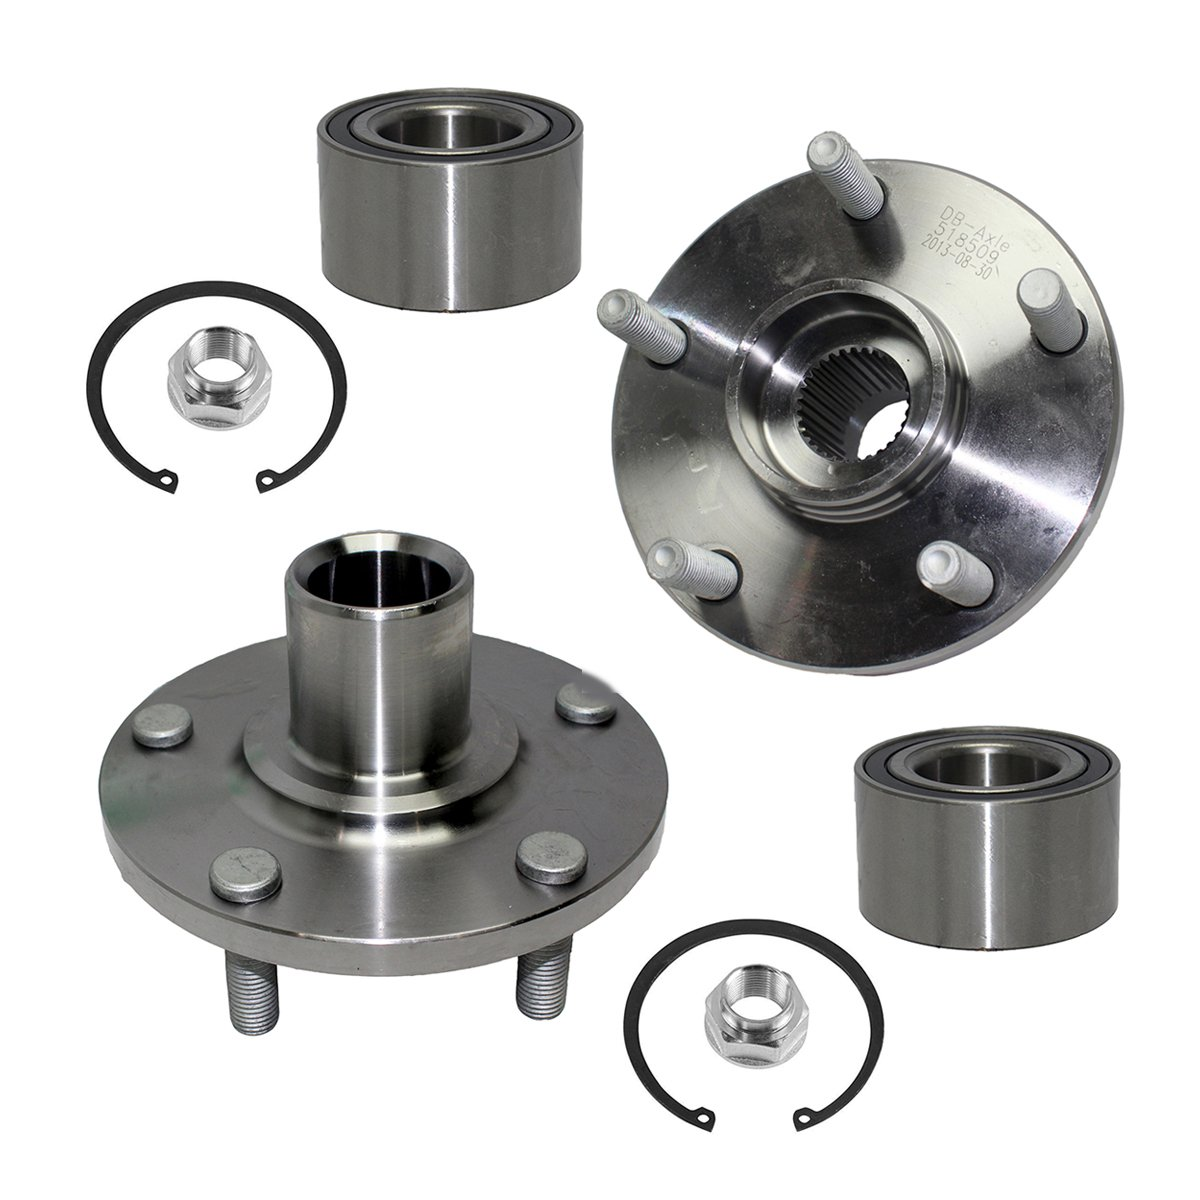 Detroit Axle - Front Wheel Bearing & Hub Assembly Left & Right Side for 92-03 Lexus ES300 - [92-03 Camry] - 95-04 Avalon - [98-03 Sienna] - 99-03 RX300 FWD - [99-03 Solara V6 Only]